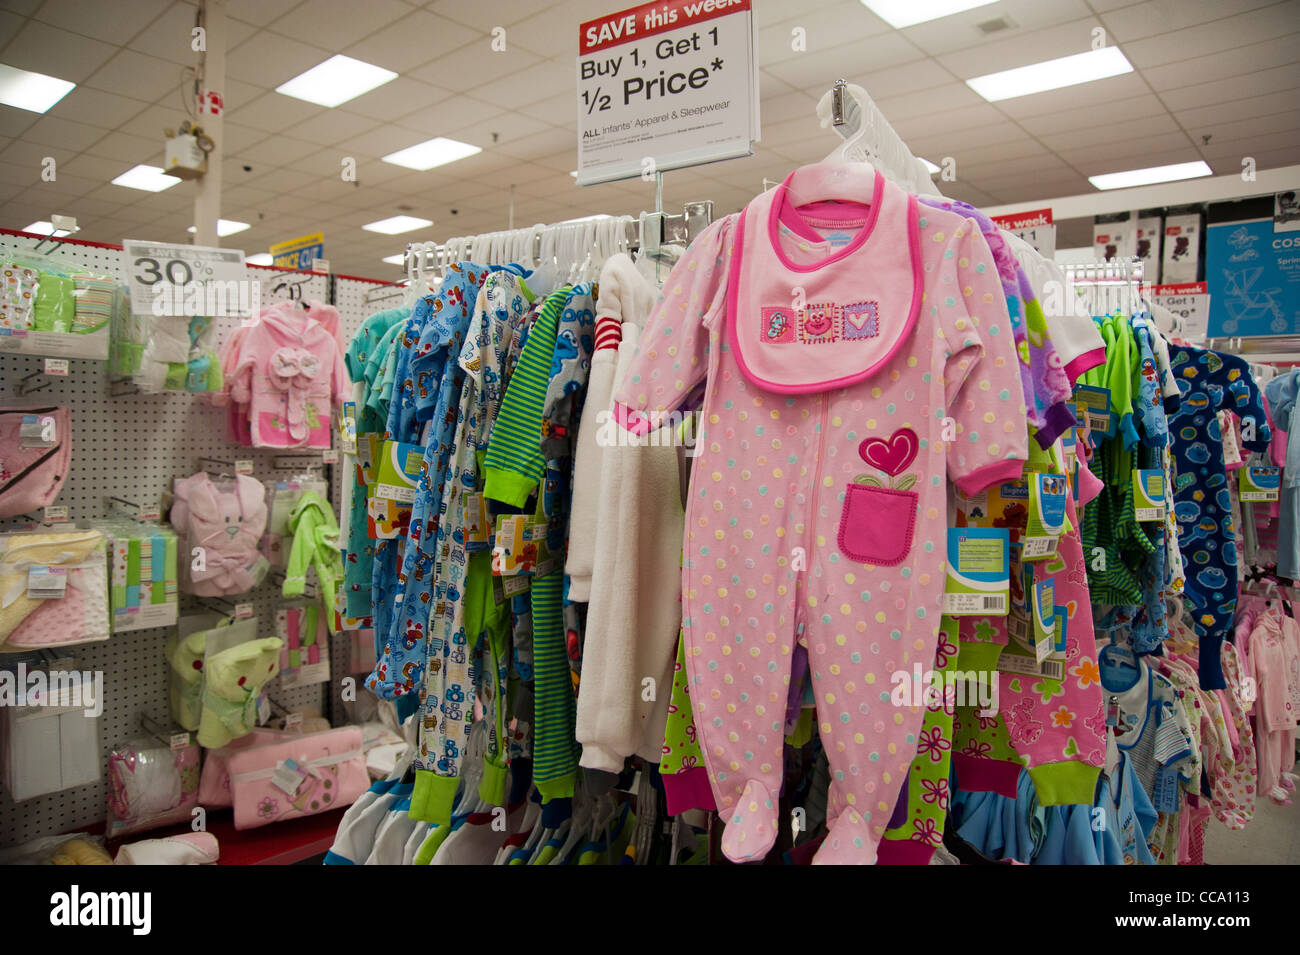 b953e88273cfa Baby clothes and merchandise for sale inside a department store ...